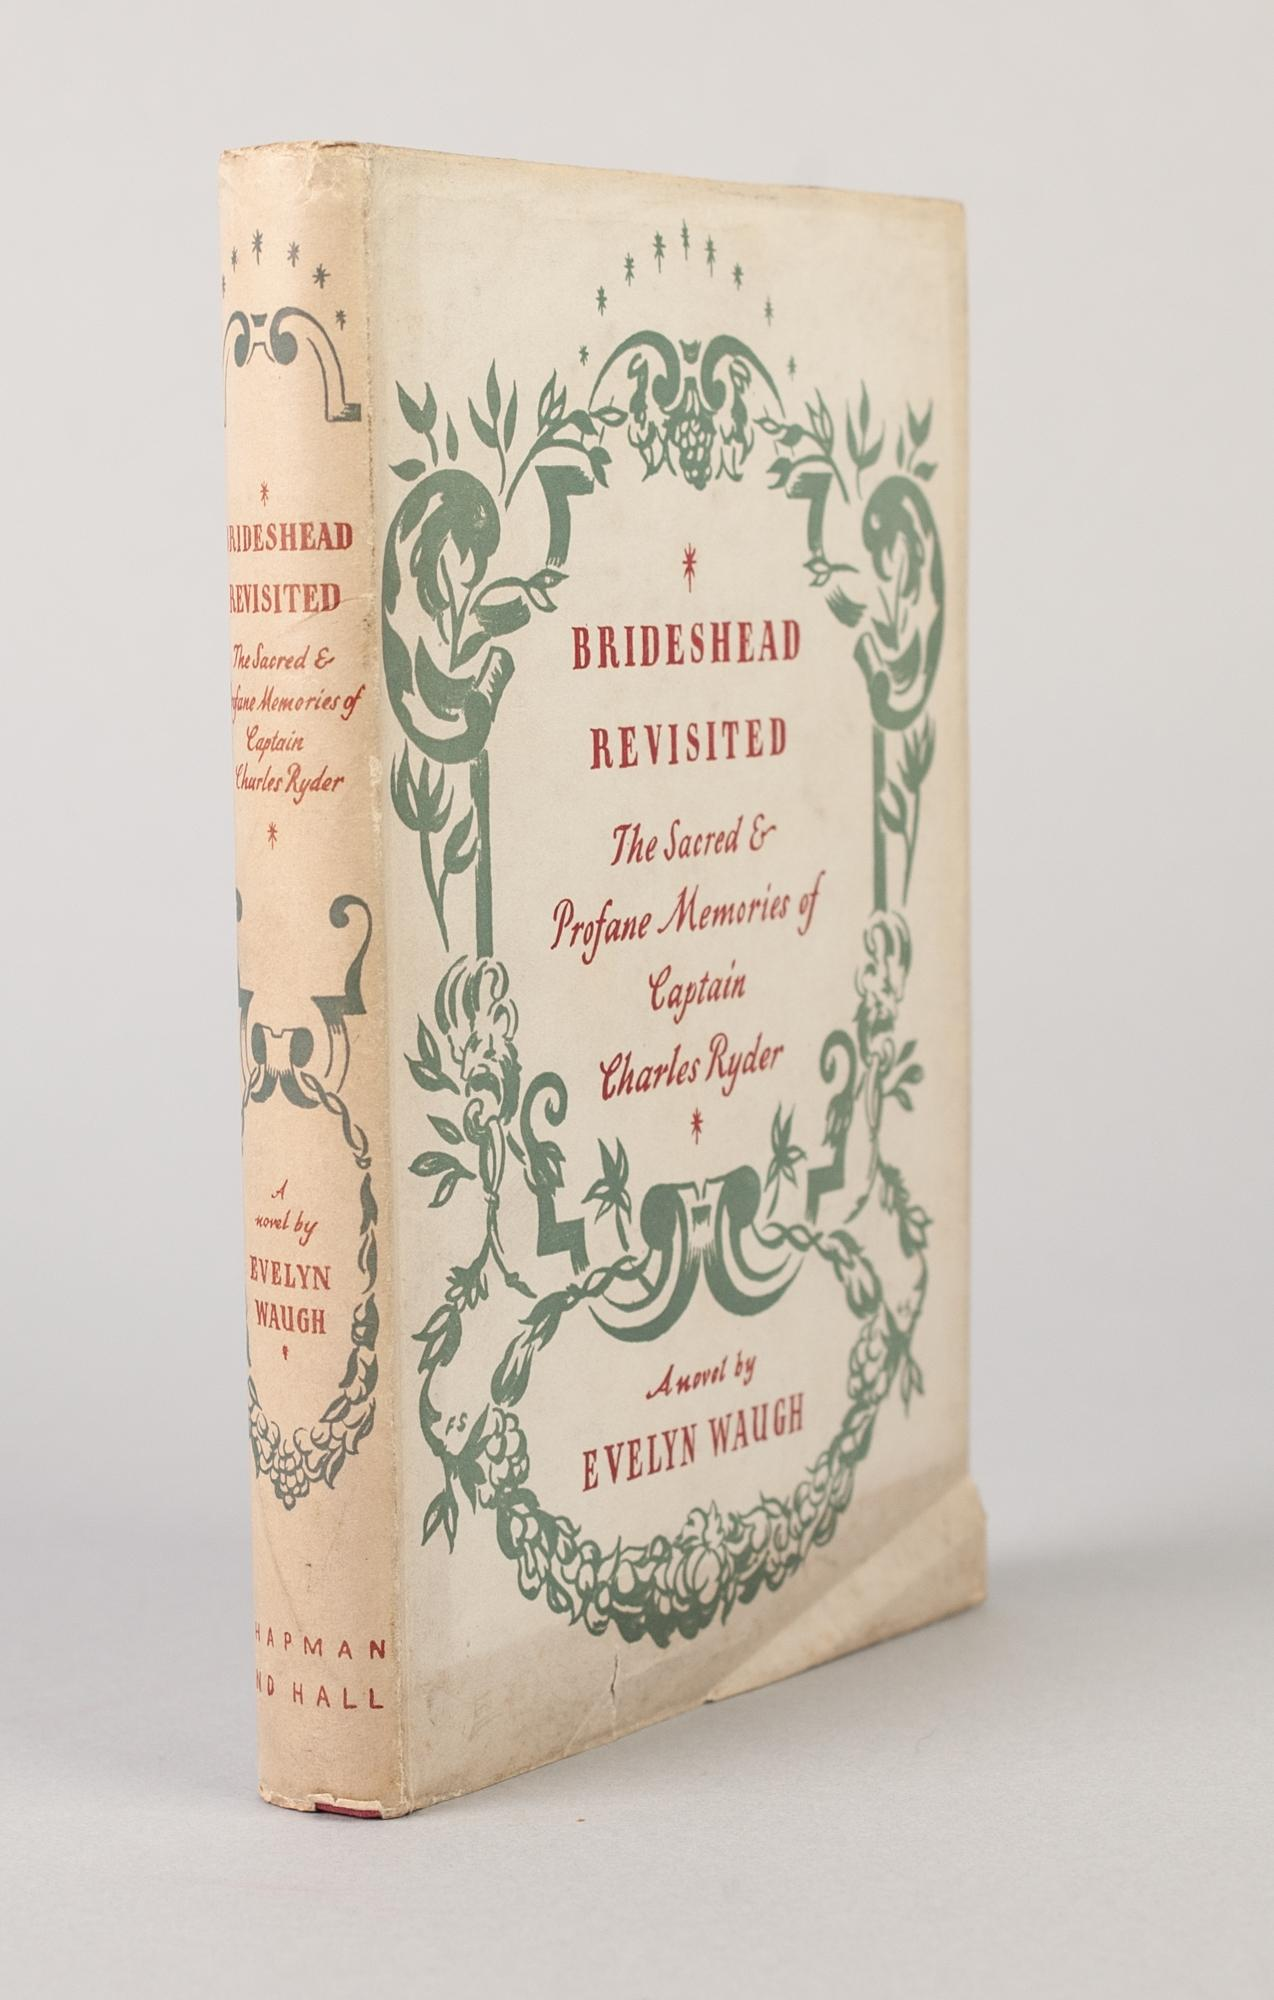 Lot 50 - EVELYN WAUGH, BRIDESHEAD REVISITED, THE SACRED AND PROFANE MEMORIES OF CAPTAIN CHARLES RYDER,